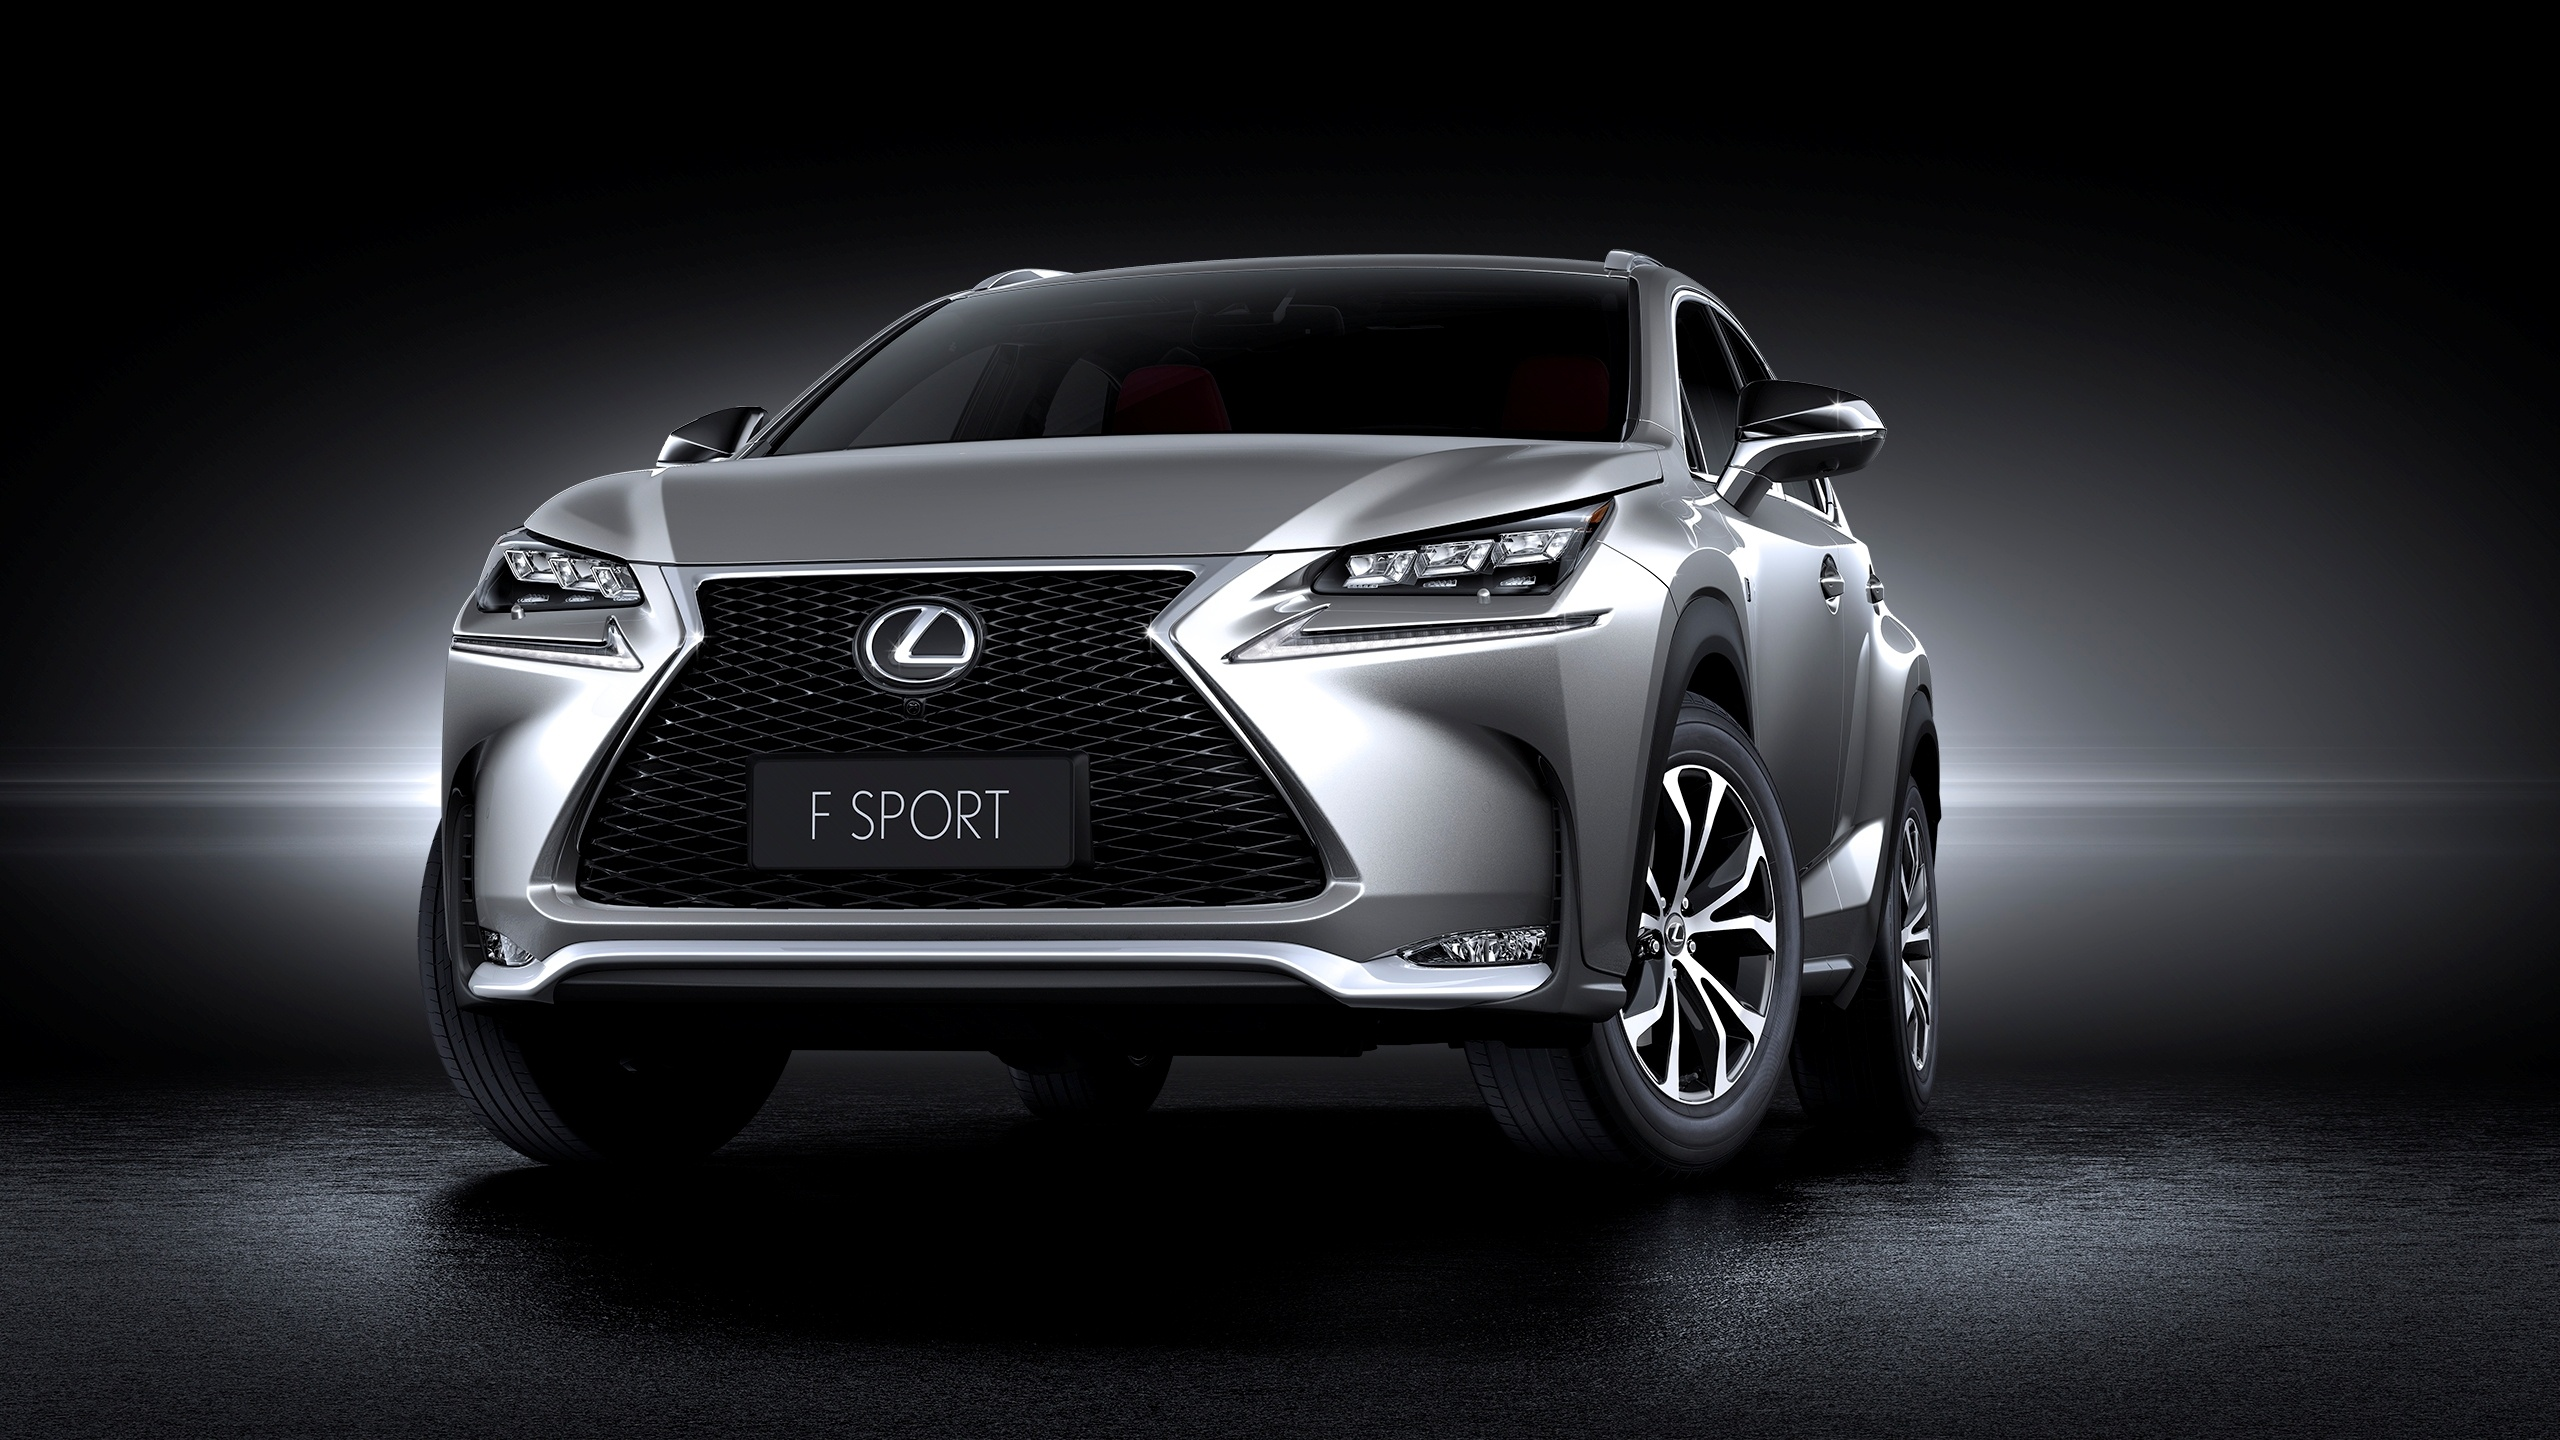 Lexus NX F Sport 2015 2560 x 1440 Download Close 2560x1440